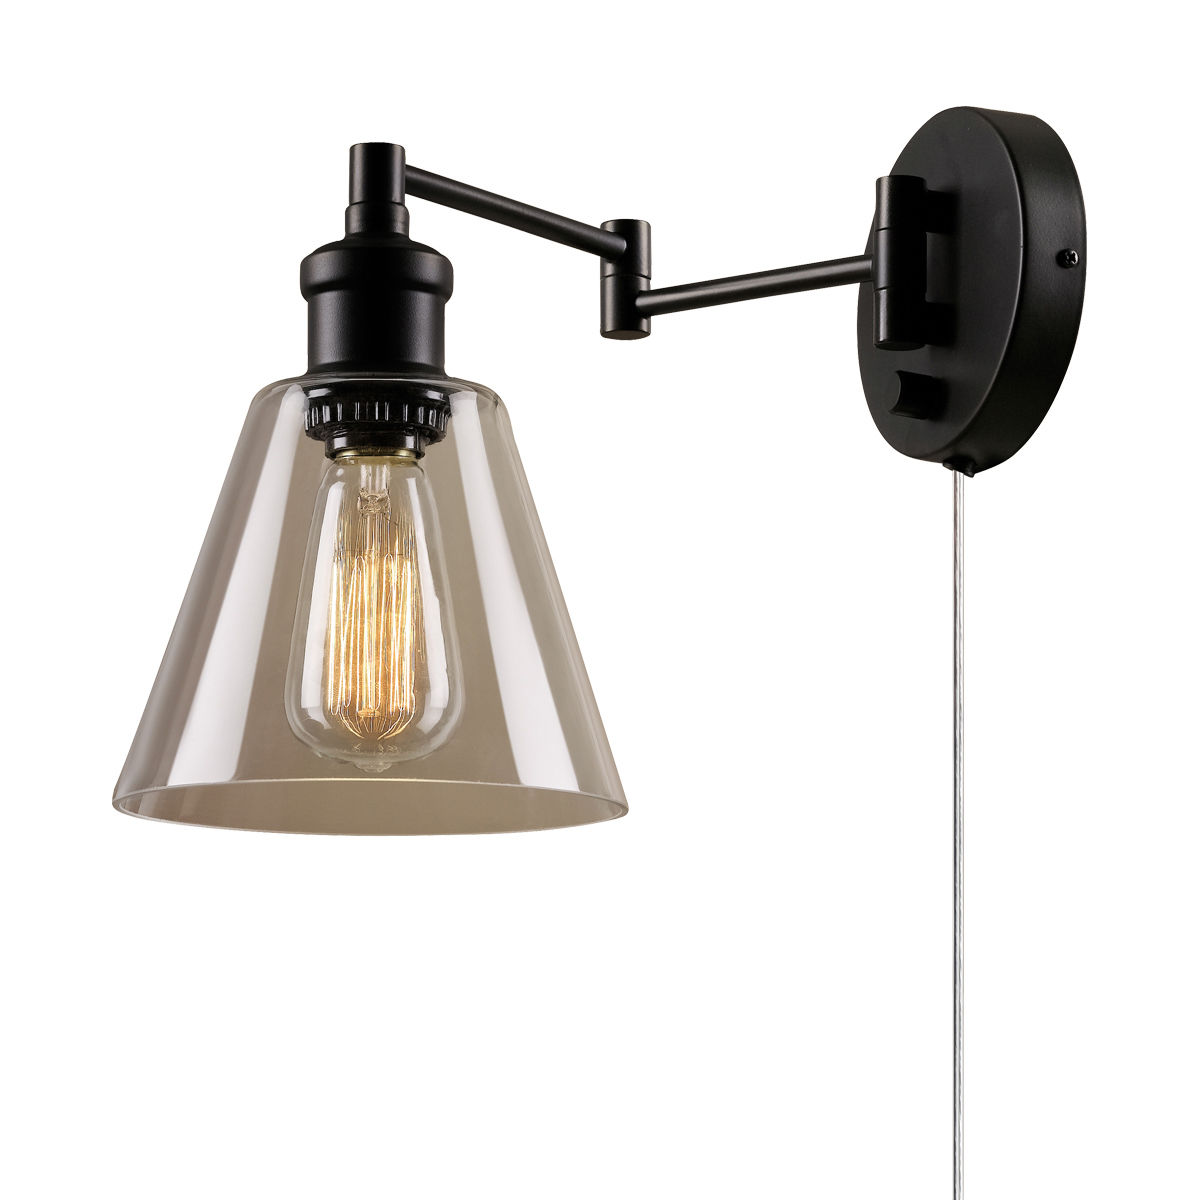 LeClair Single Light Swing Arm Wall Sconce With Clear Glass Shade And Canopy On Off